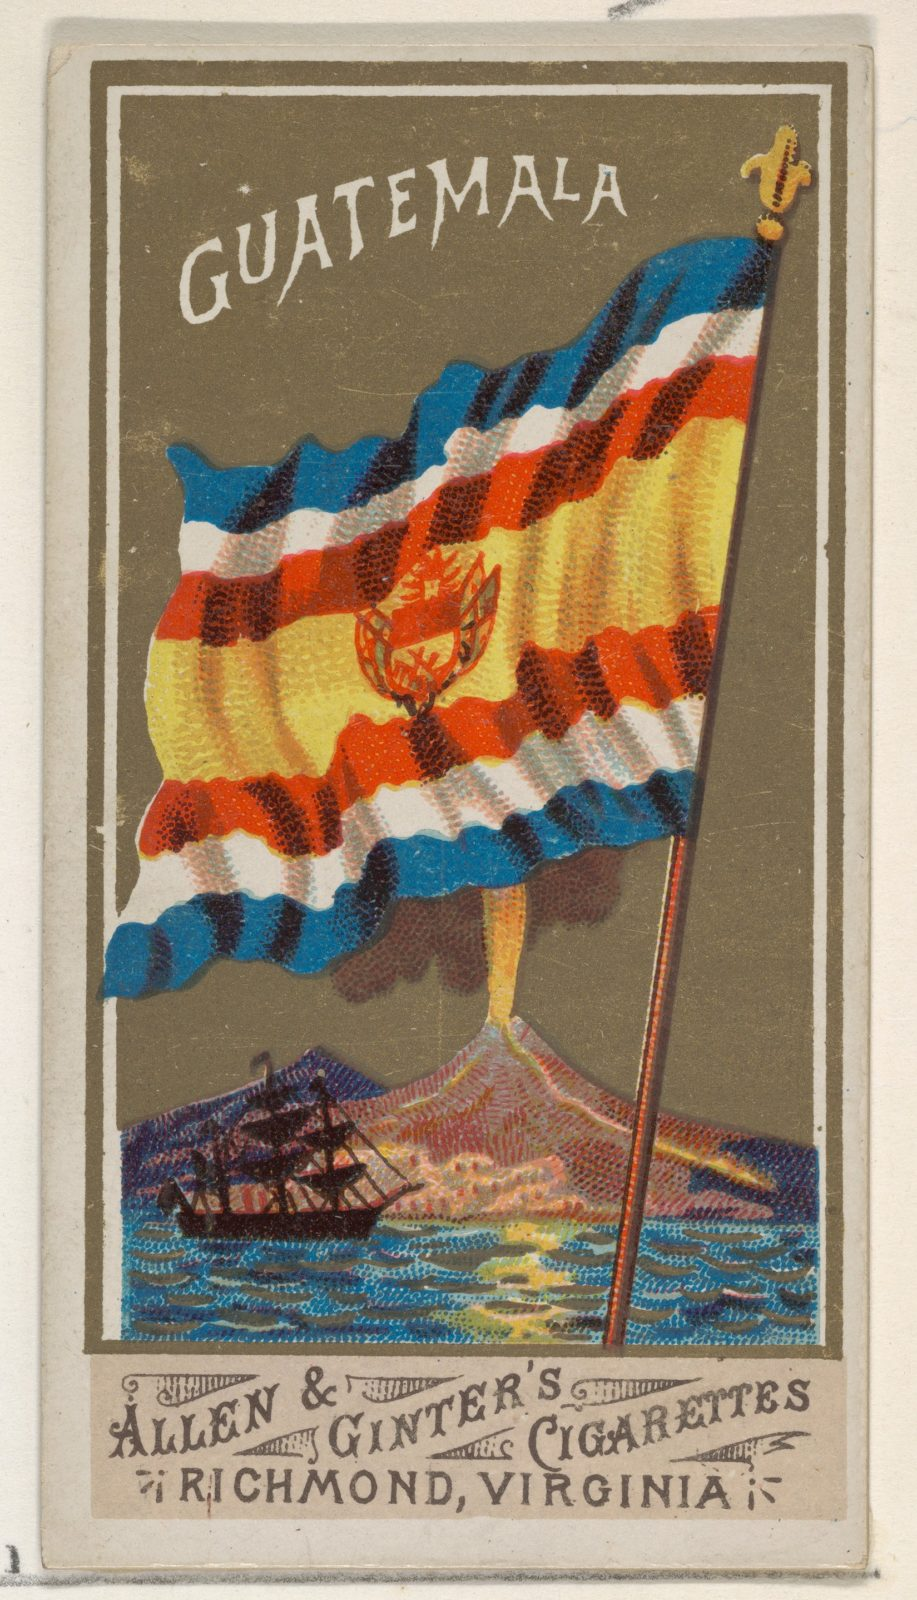 Guatemala, from Flags of All Nations, Series 1 (N9) for Allen & Ginter Cigarettes Brands